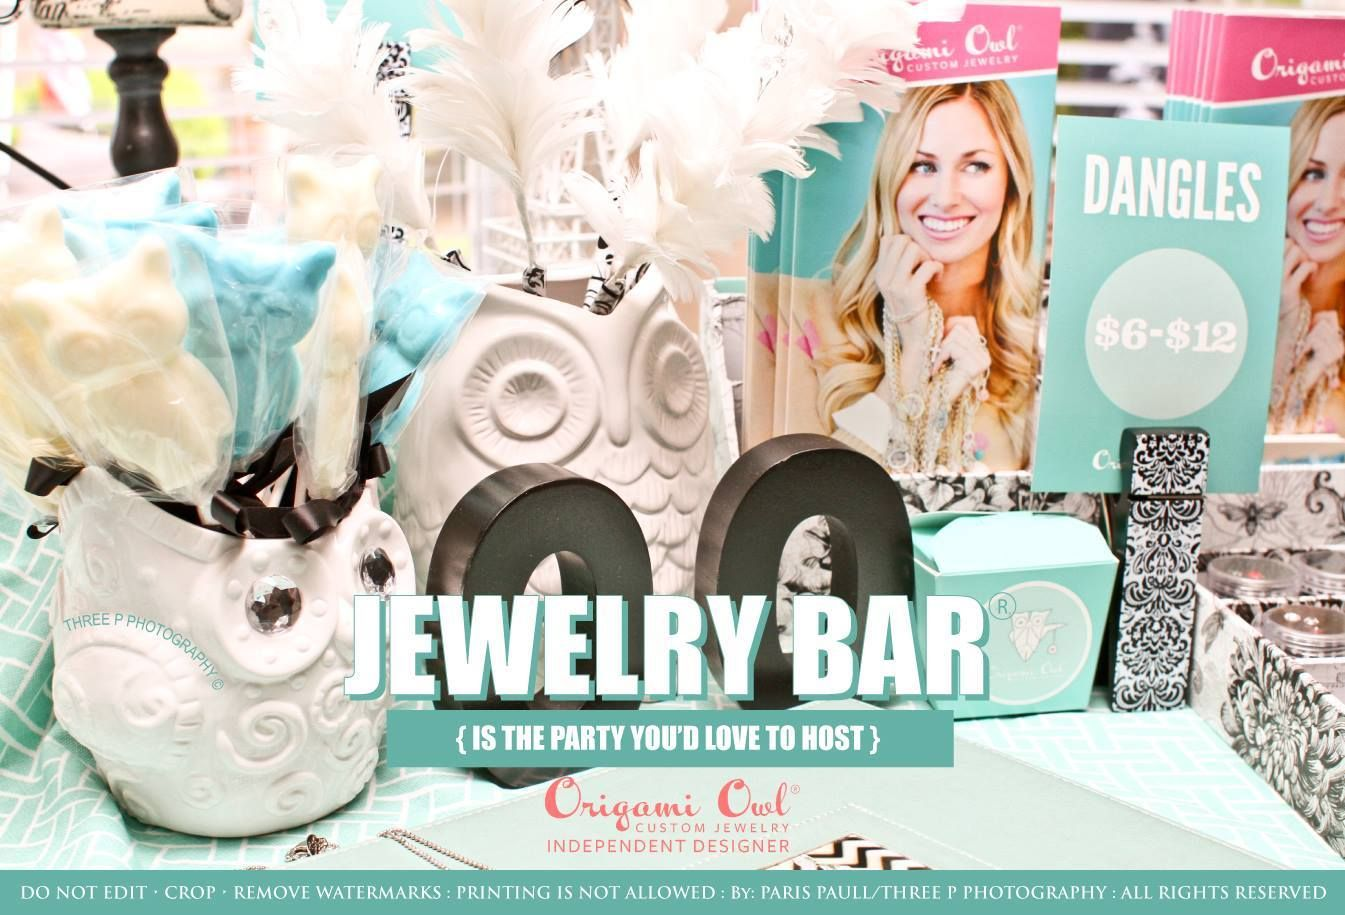 WHO wants FREE Jewelry!? Host a jewelry bar, what do you have to lose!?